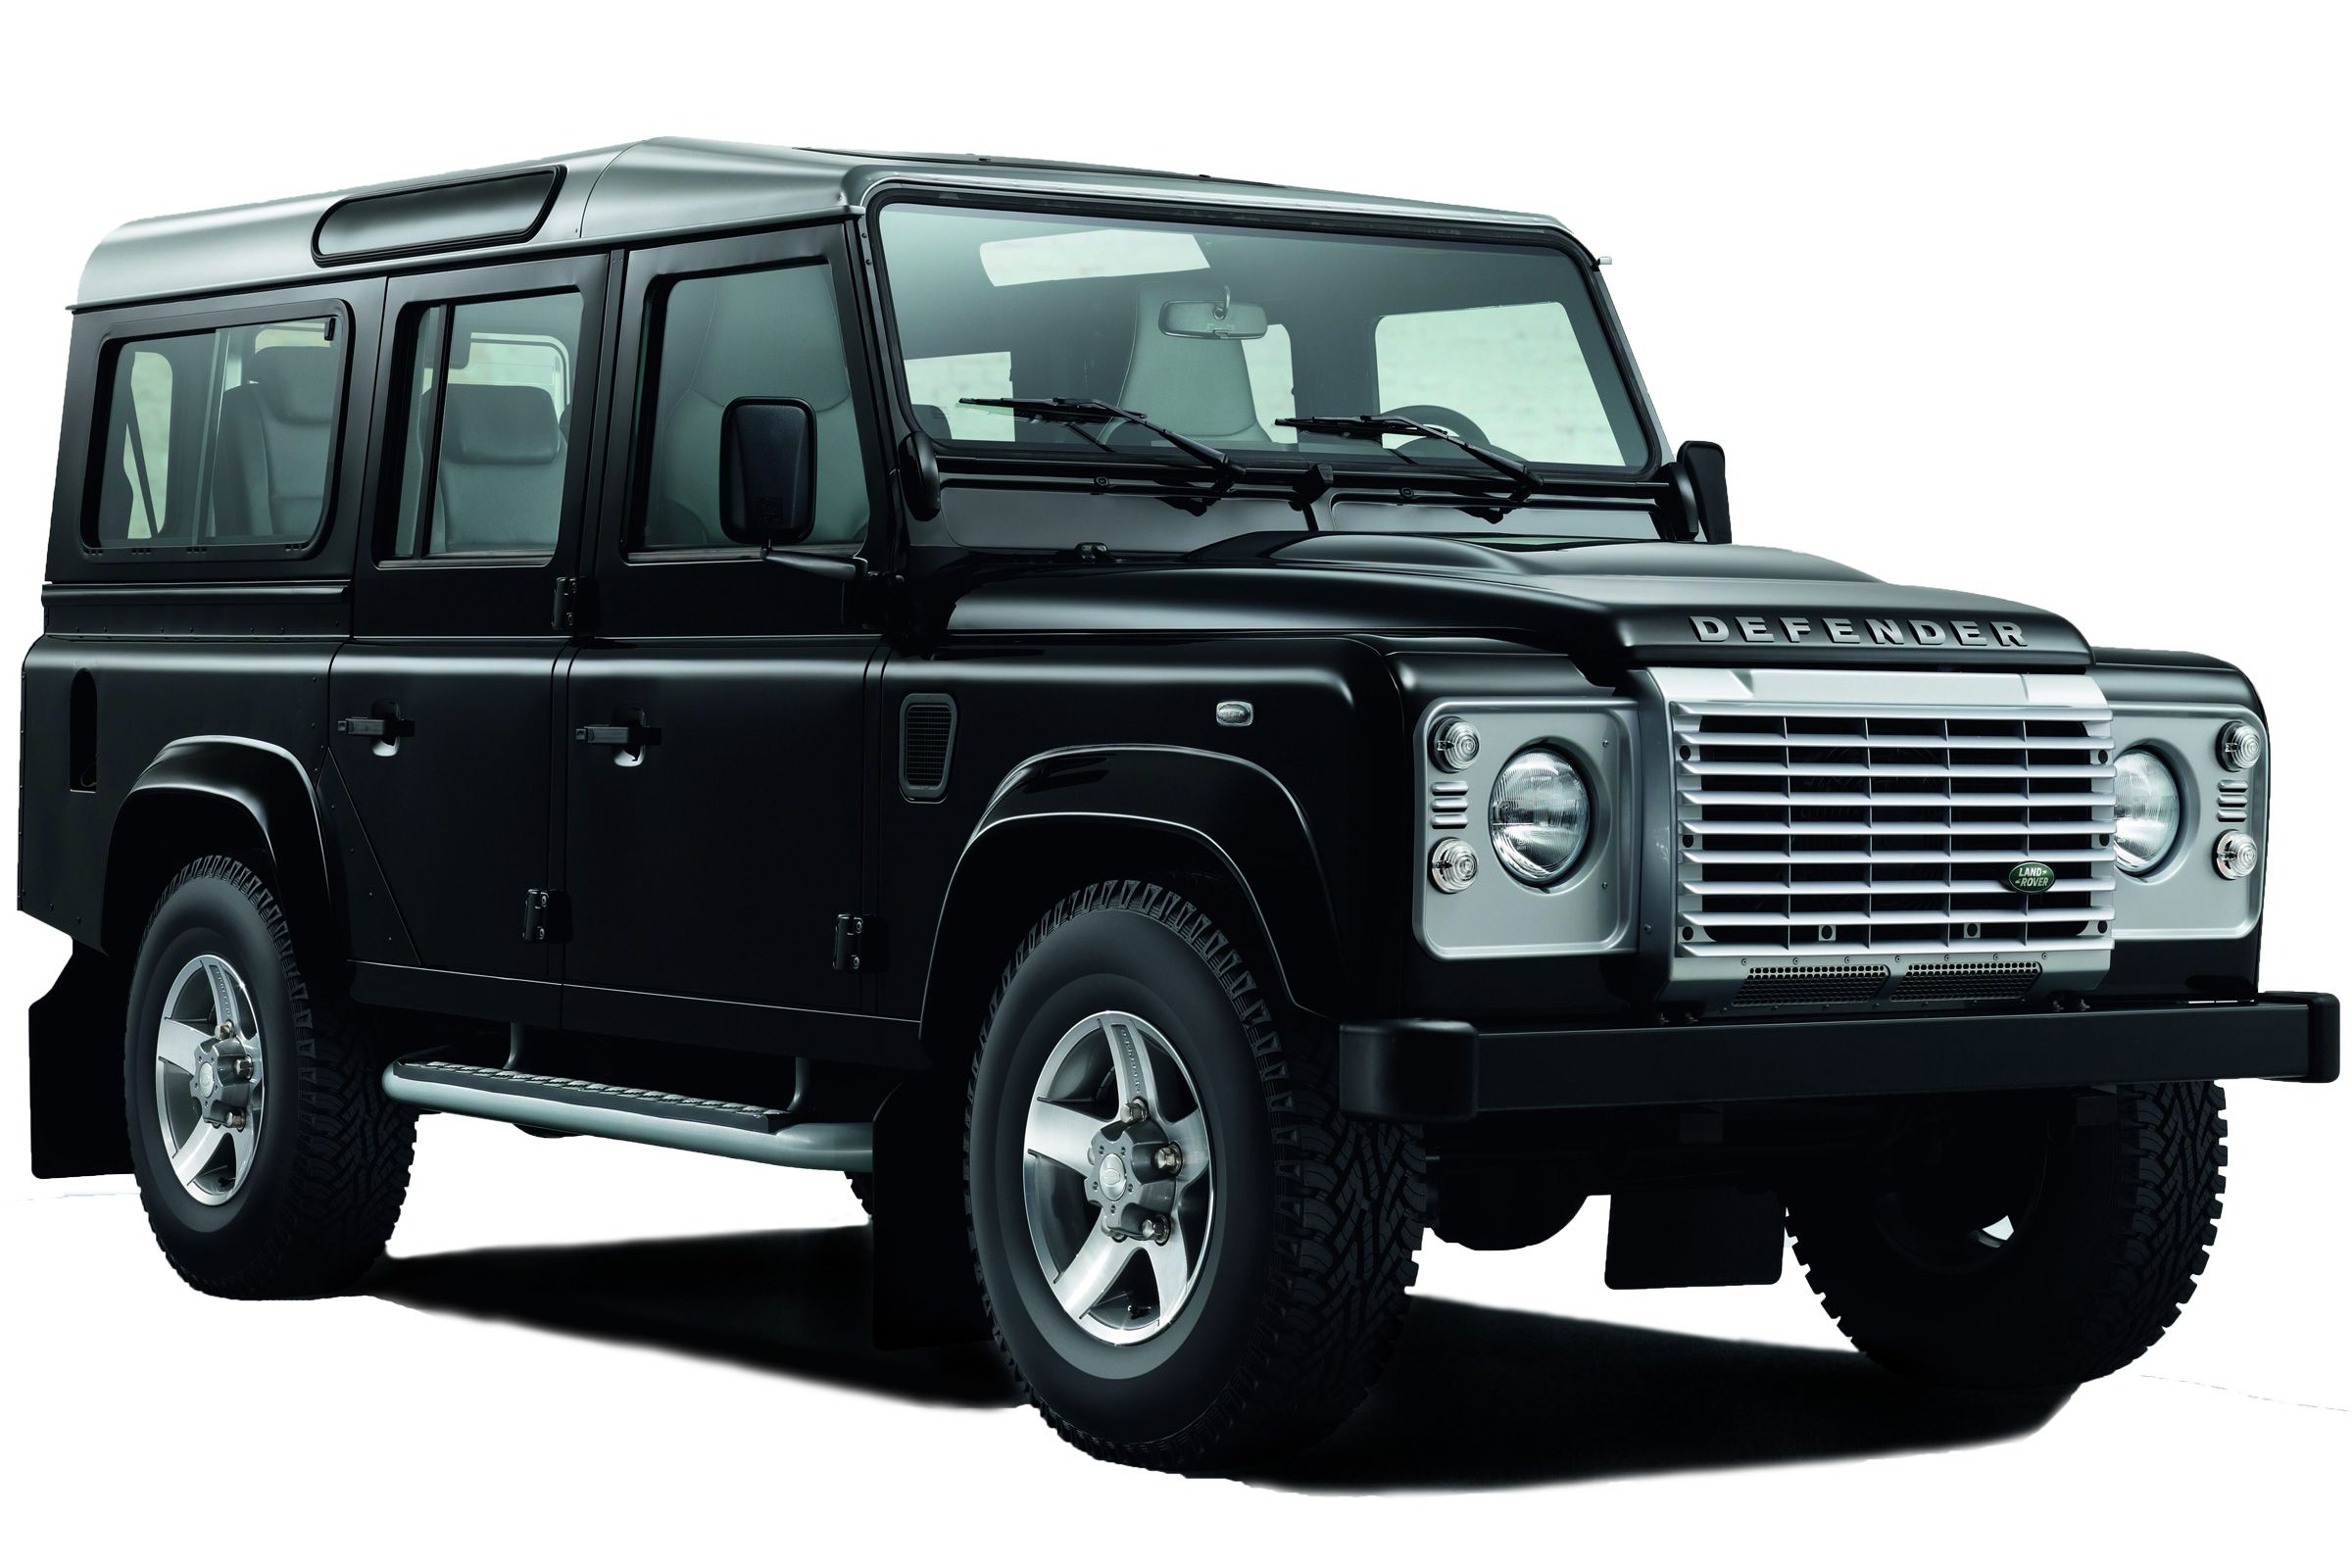 The Land Rover Defender is the ultimate off roader What it lacks